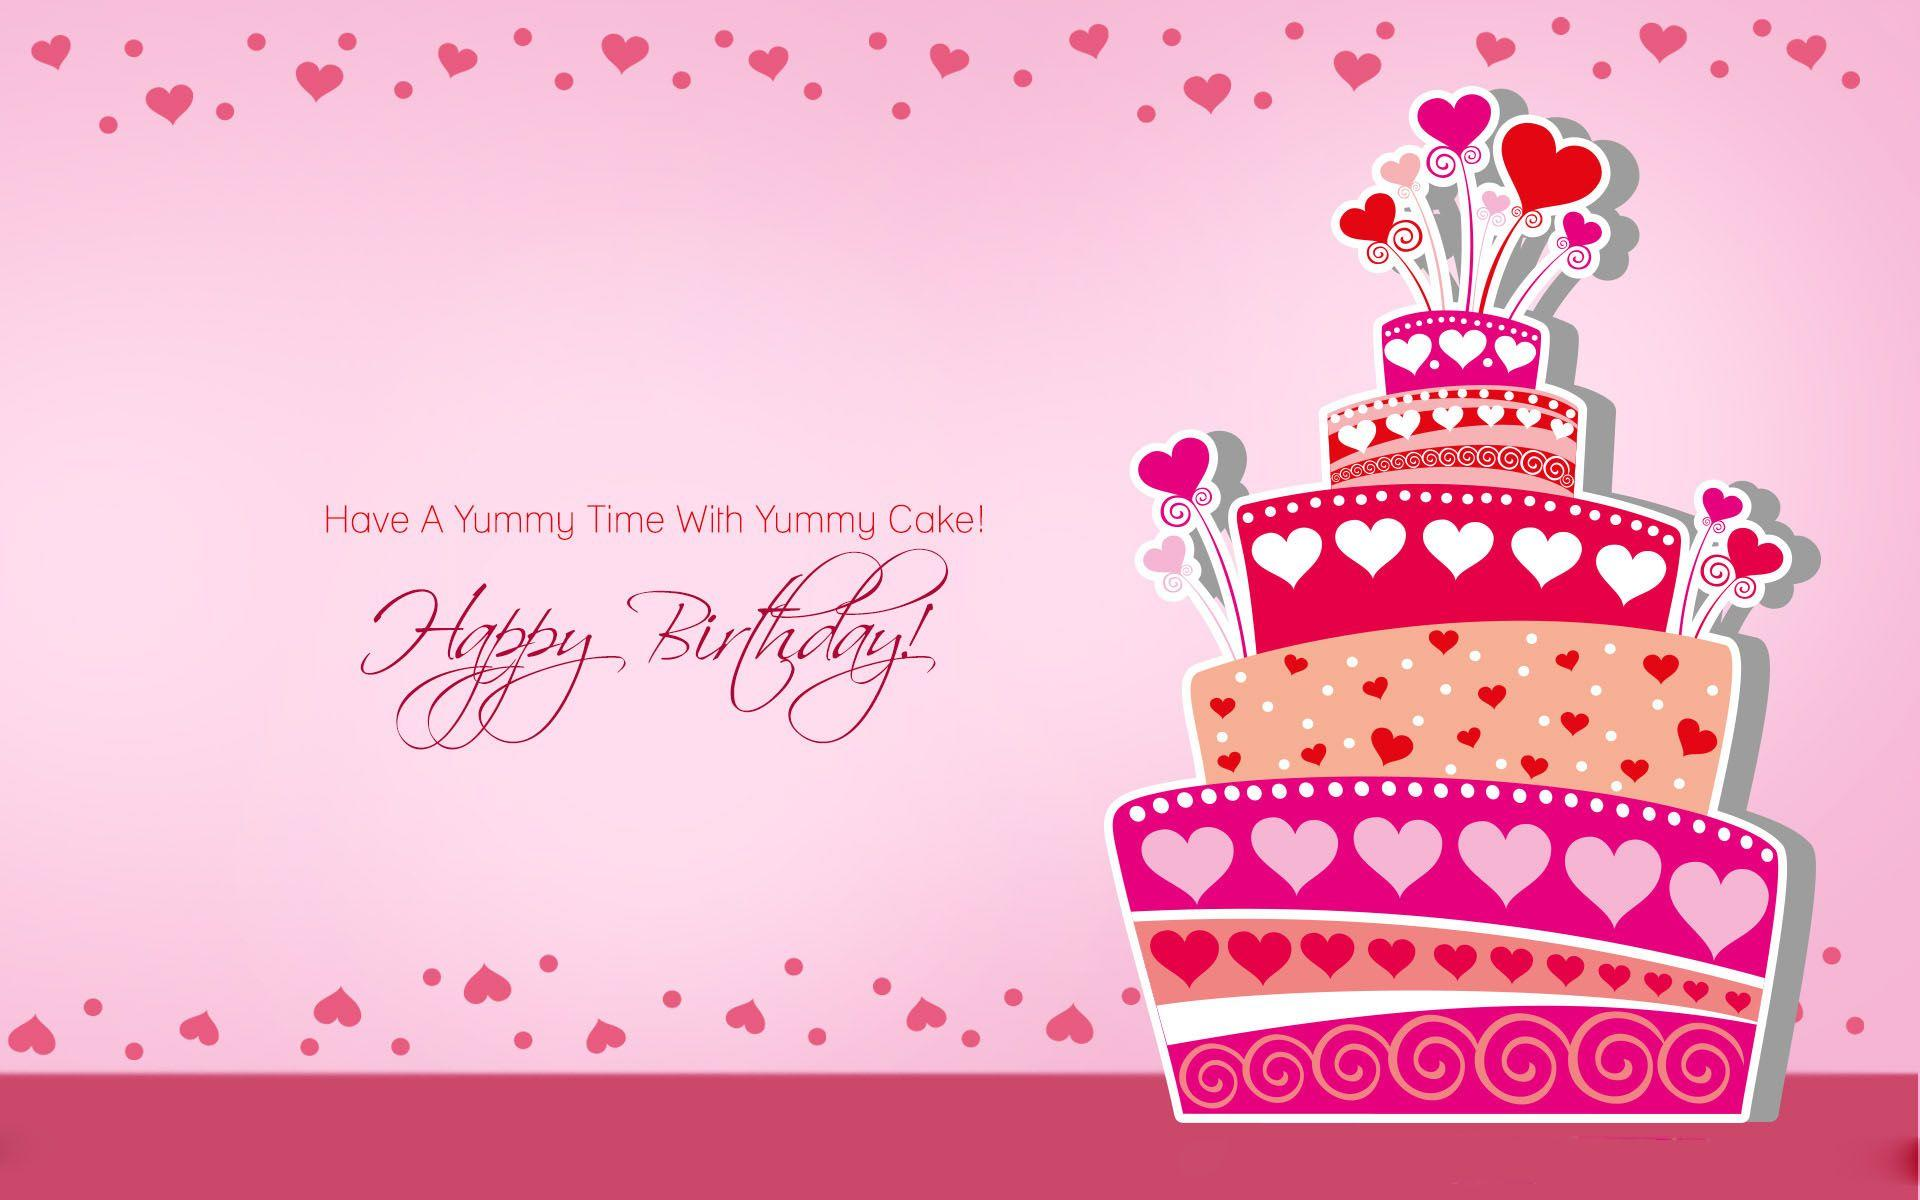 My Love Birthday Wallpaper : Happy Birthday Wallpapers Image - Wallpaper cave